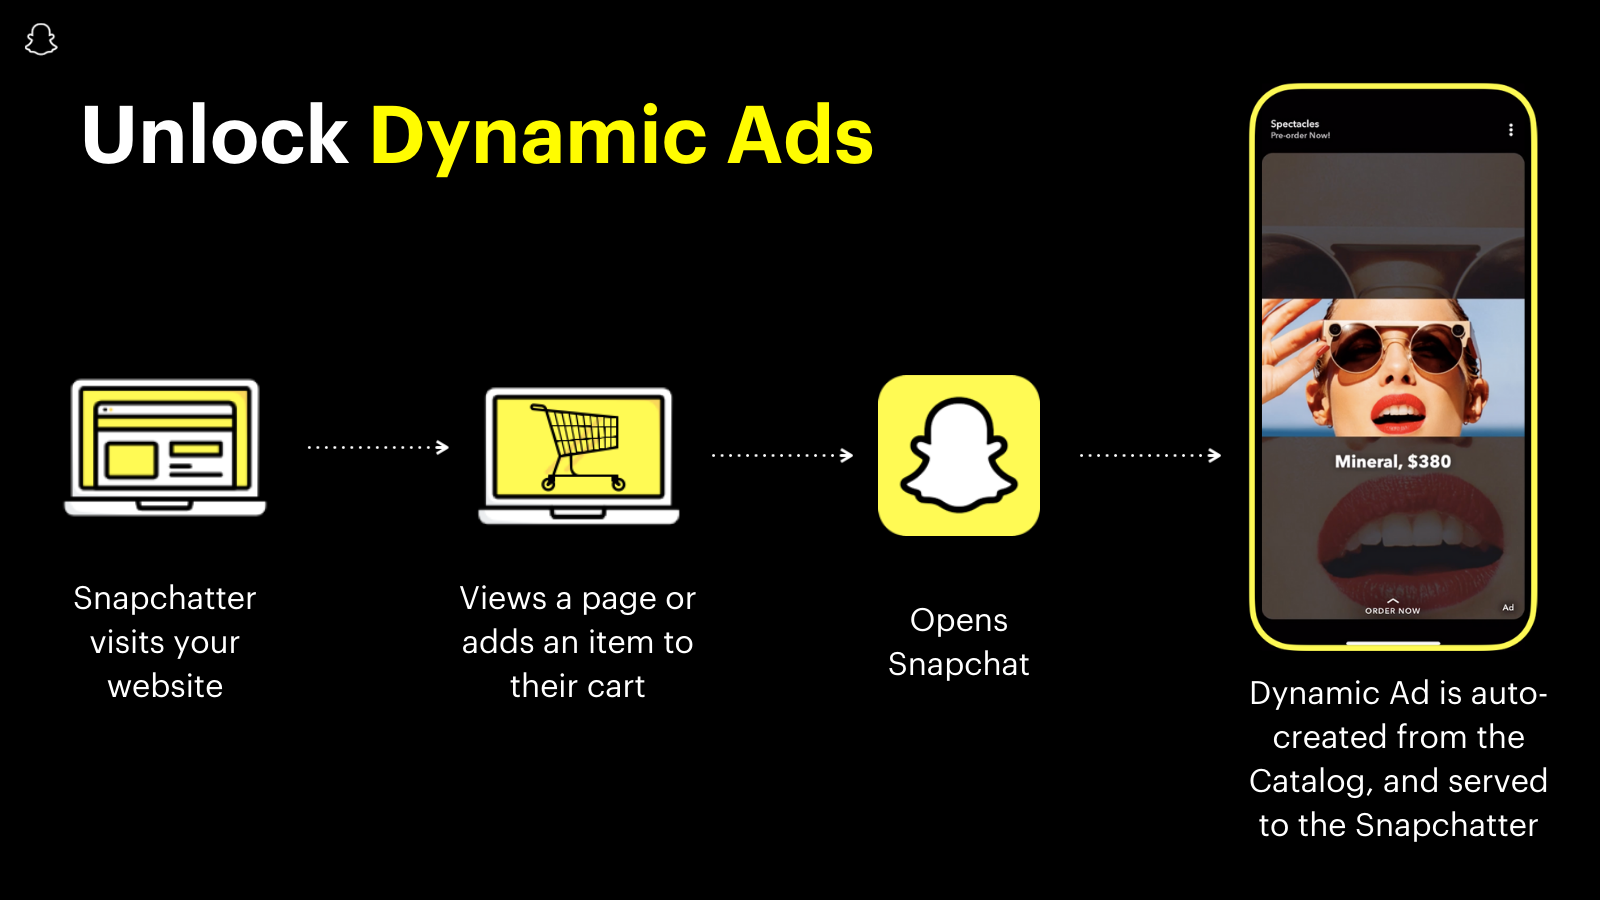 Unlock Snapchat's Dynamic Ads, automated and personalized ads